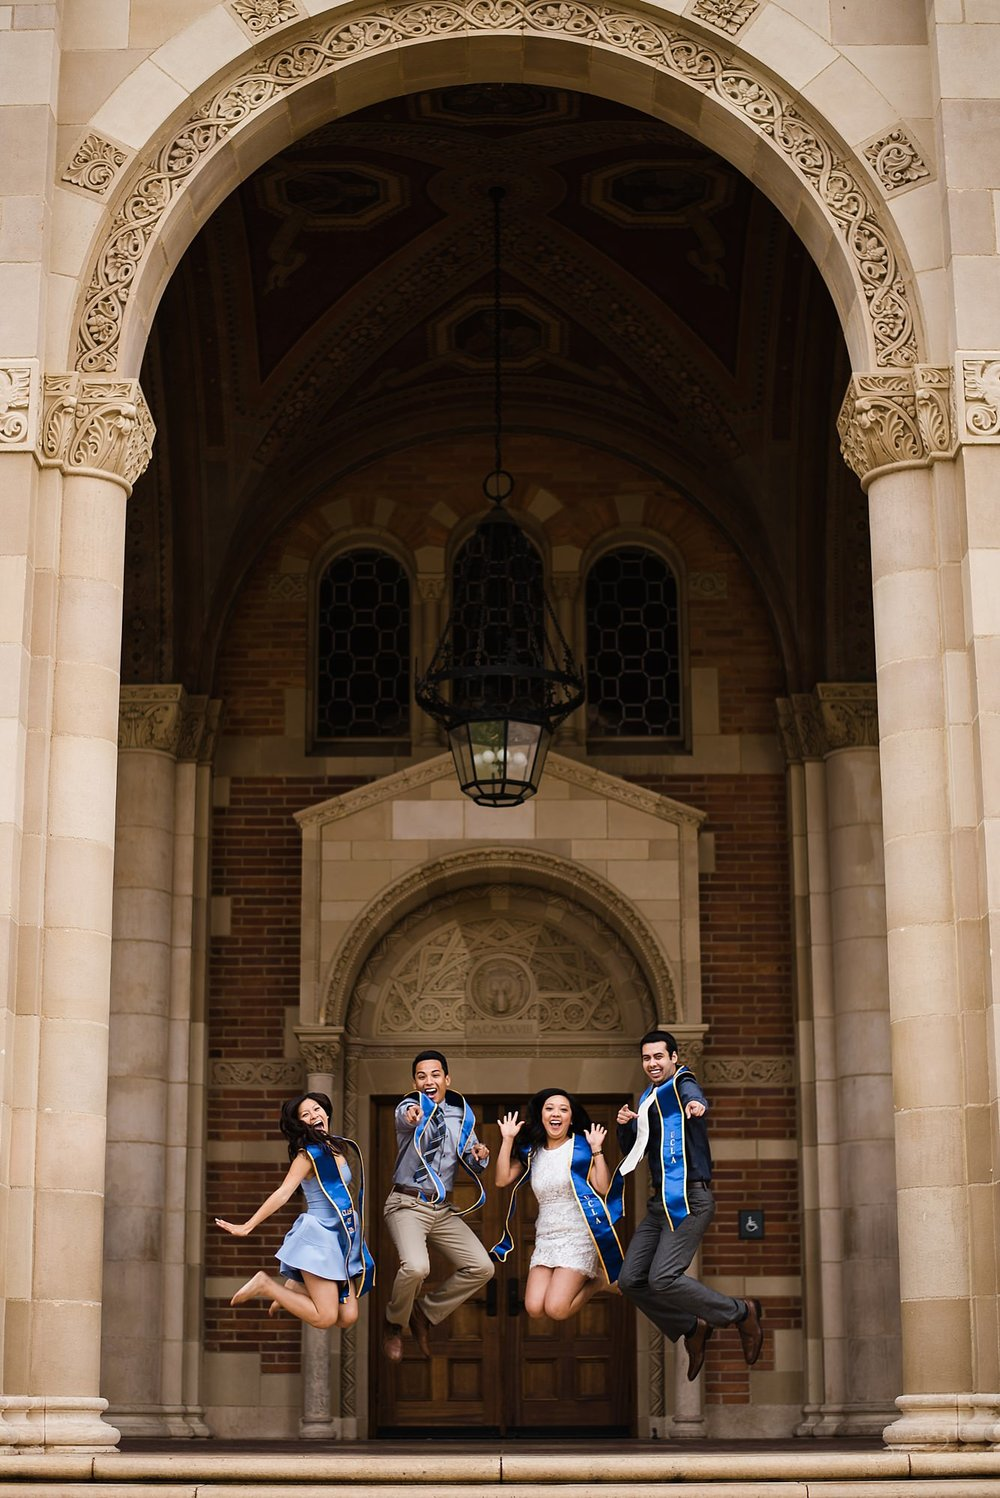 graduation senior portrait of a group jumping in unison under an arch at royce hall at ucla in los angeles